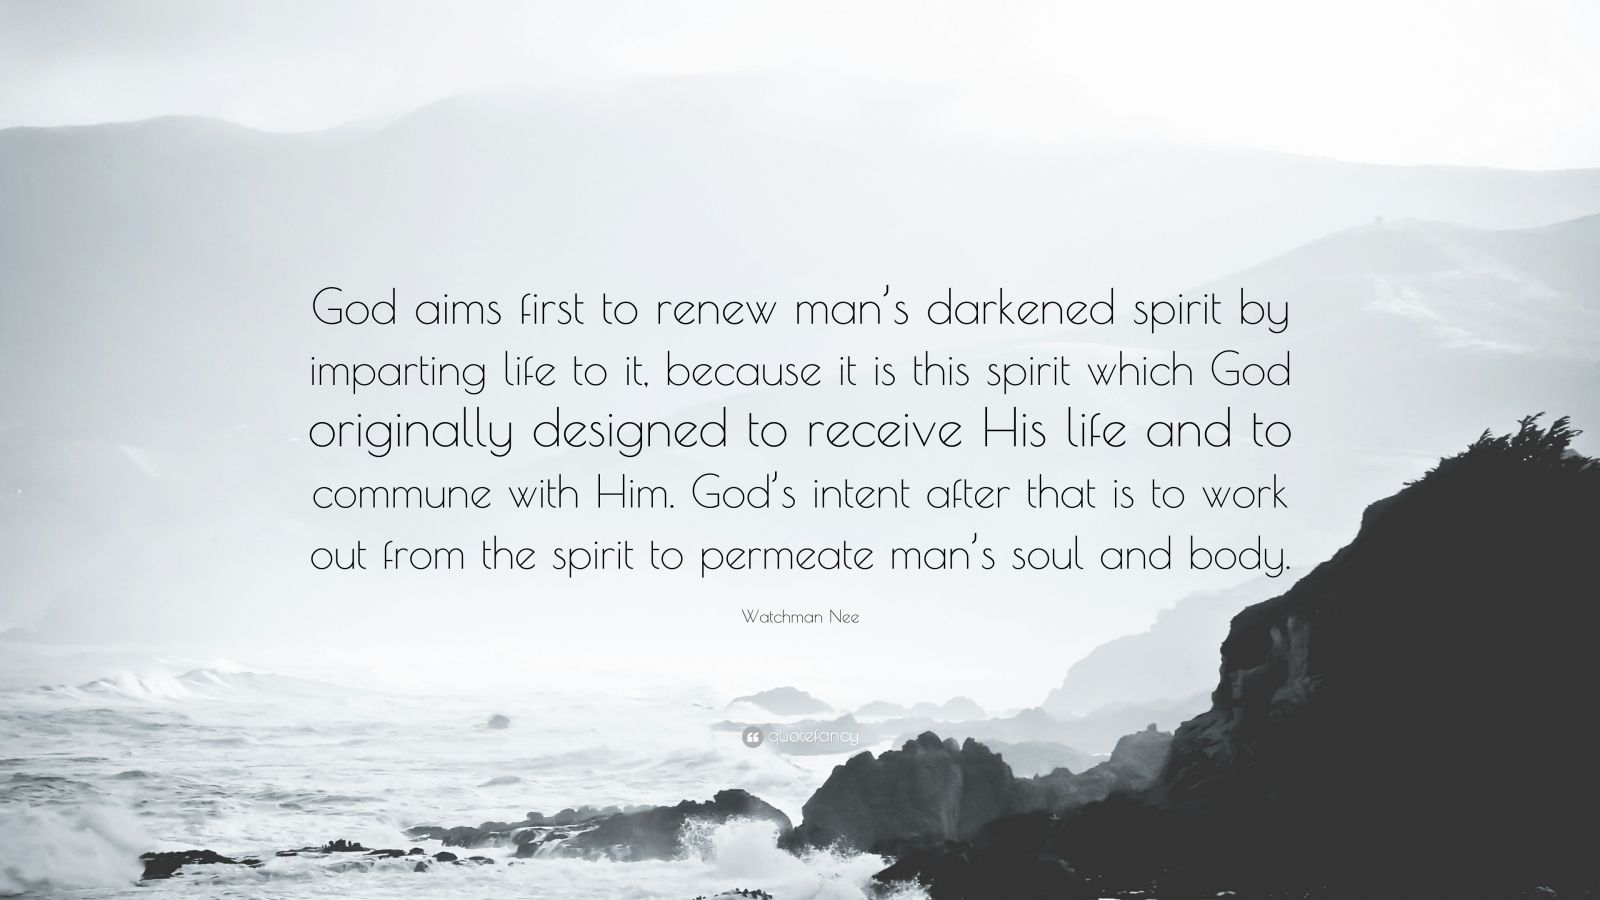 "Watchman Nee Quote: ""God aims first to renew man's darkened spirit by imparting life to it, because it is this spirit which God originally designed to receive His life and to commune with Him. God's intent after that is to work out from the spirit to permeate man's soul and body."""